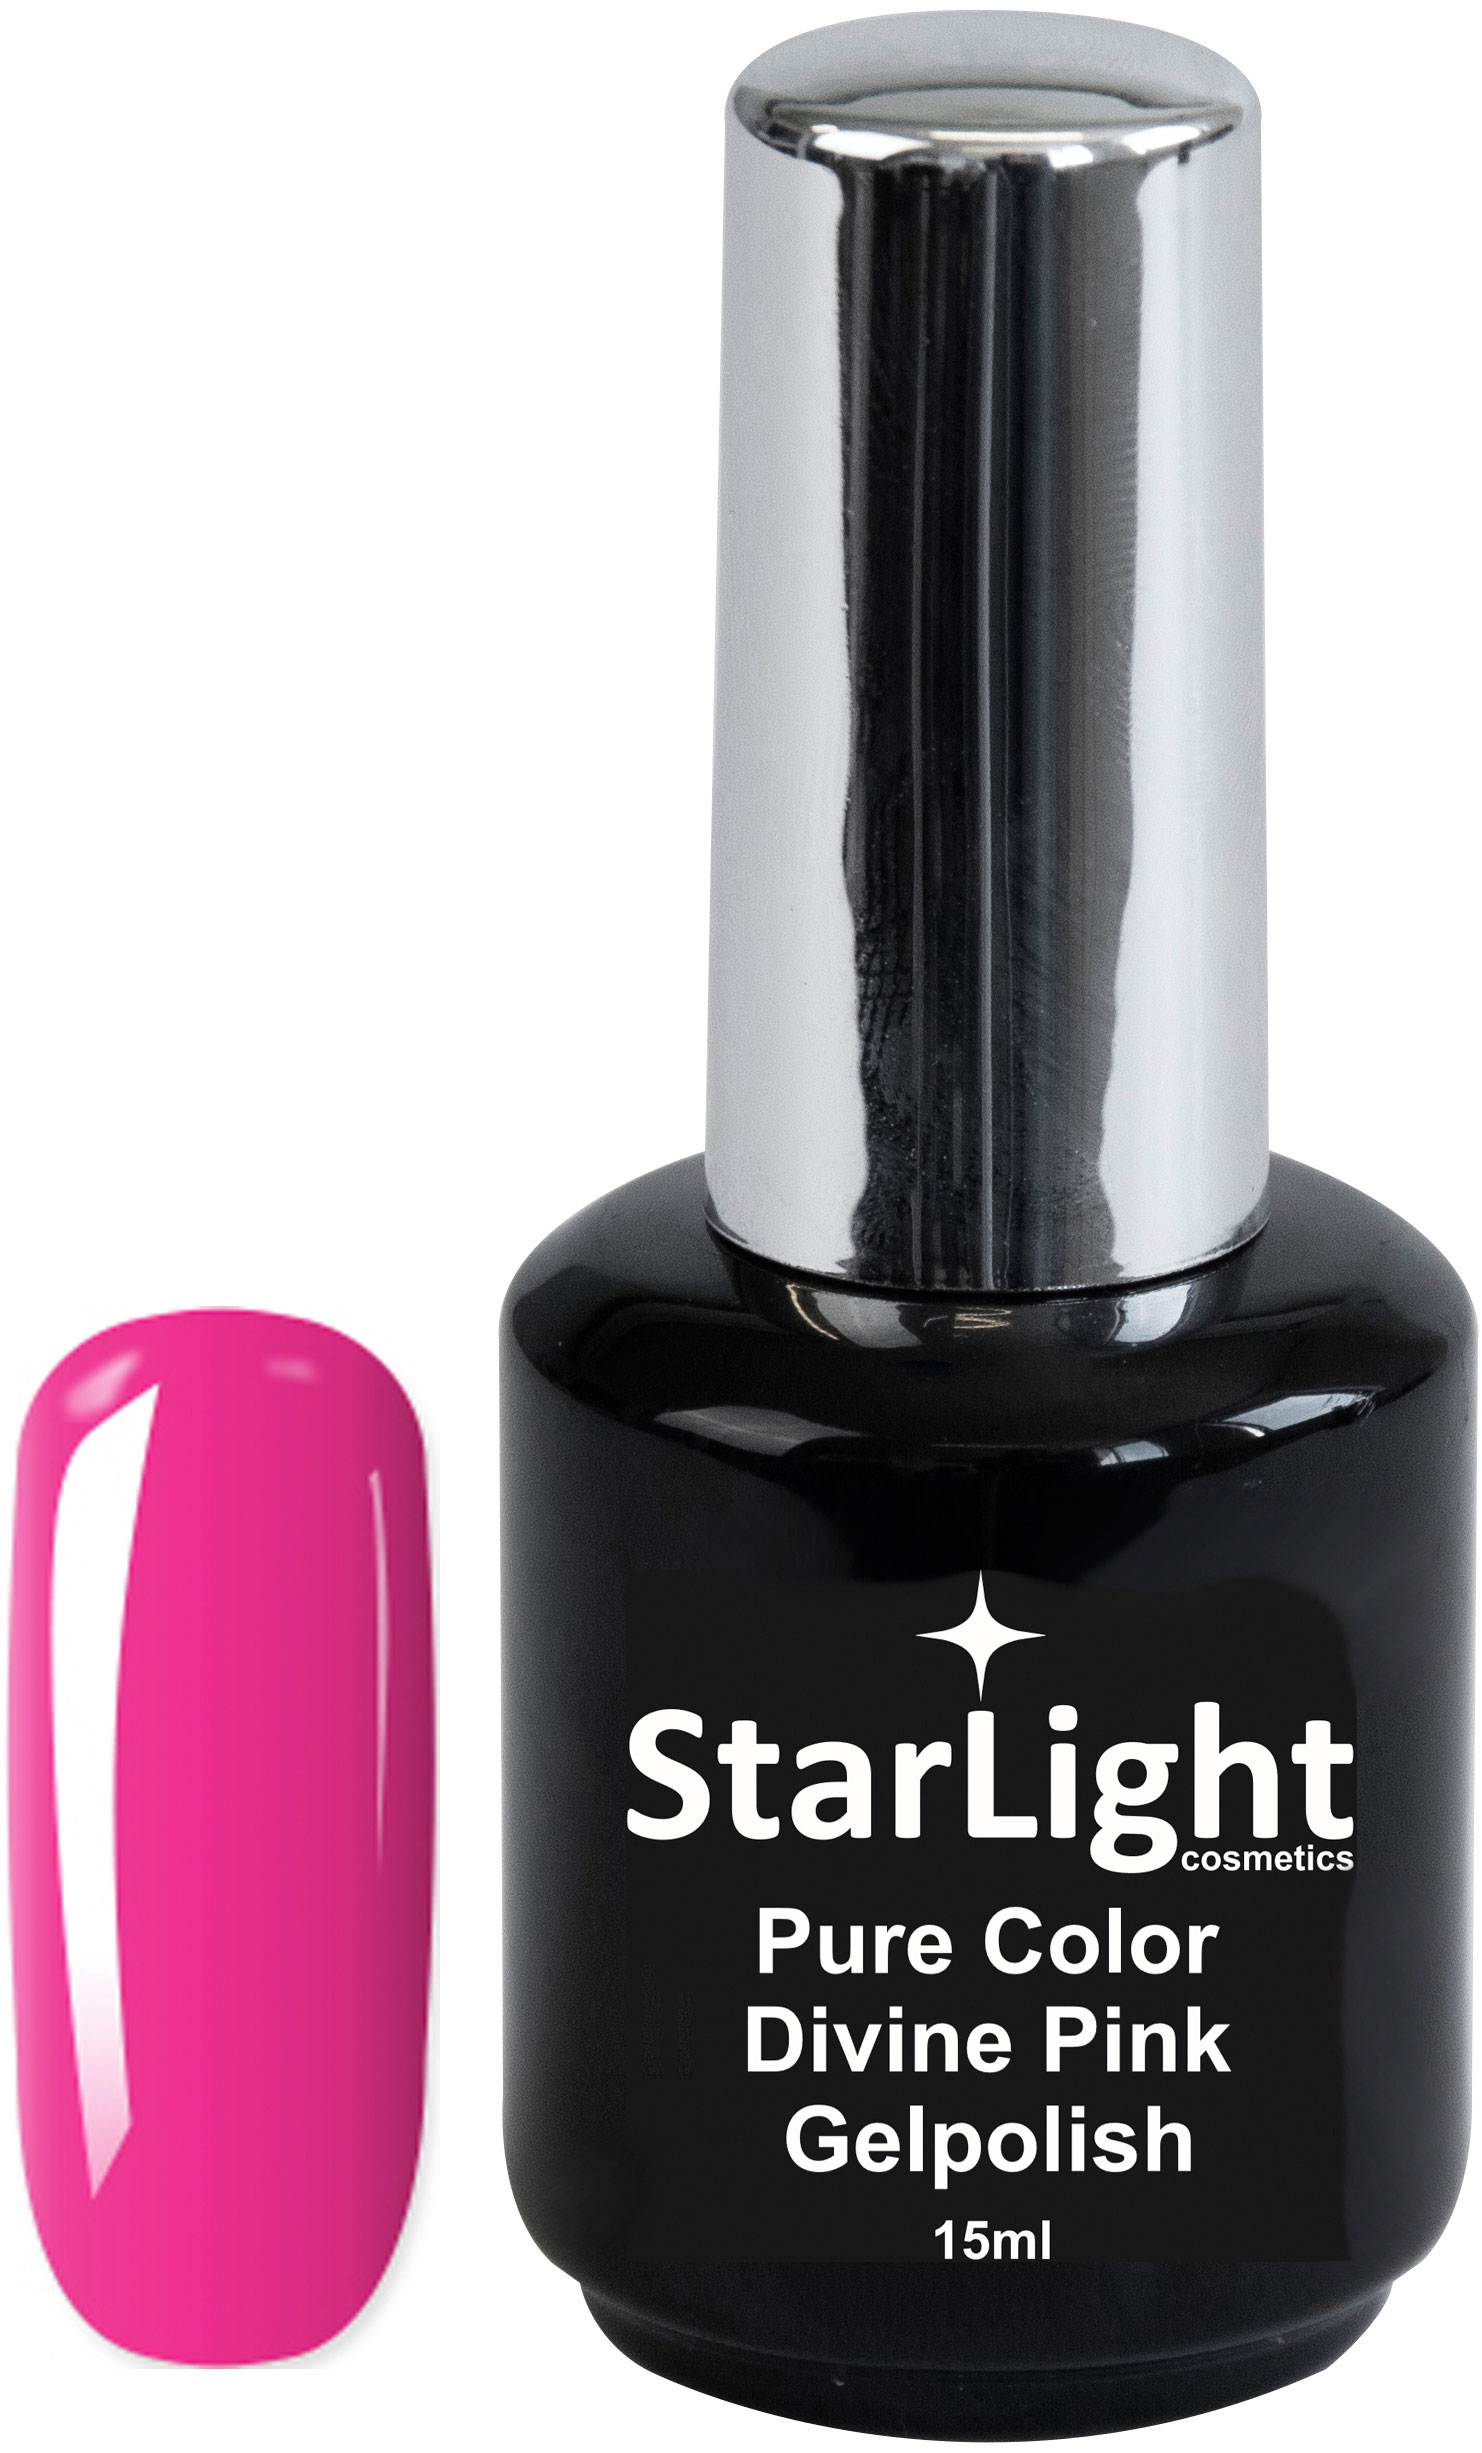 Naglar Gelpolish Pure Color Divine Pink - 15 ml